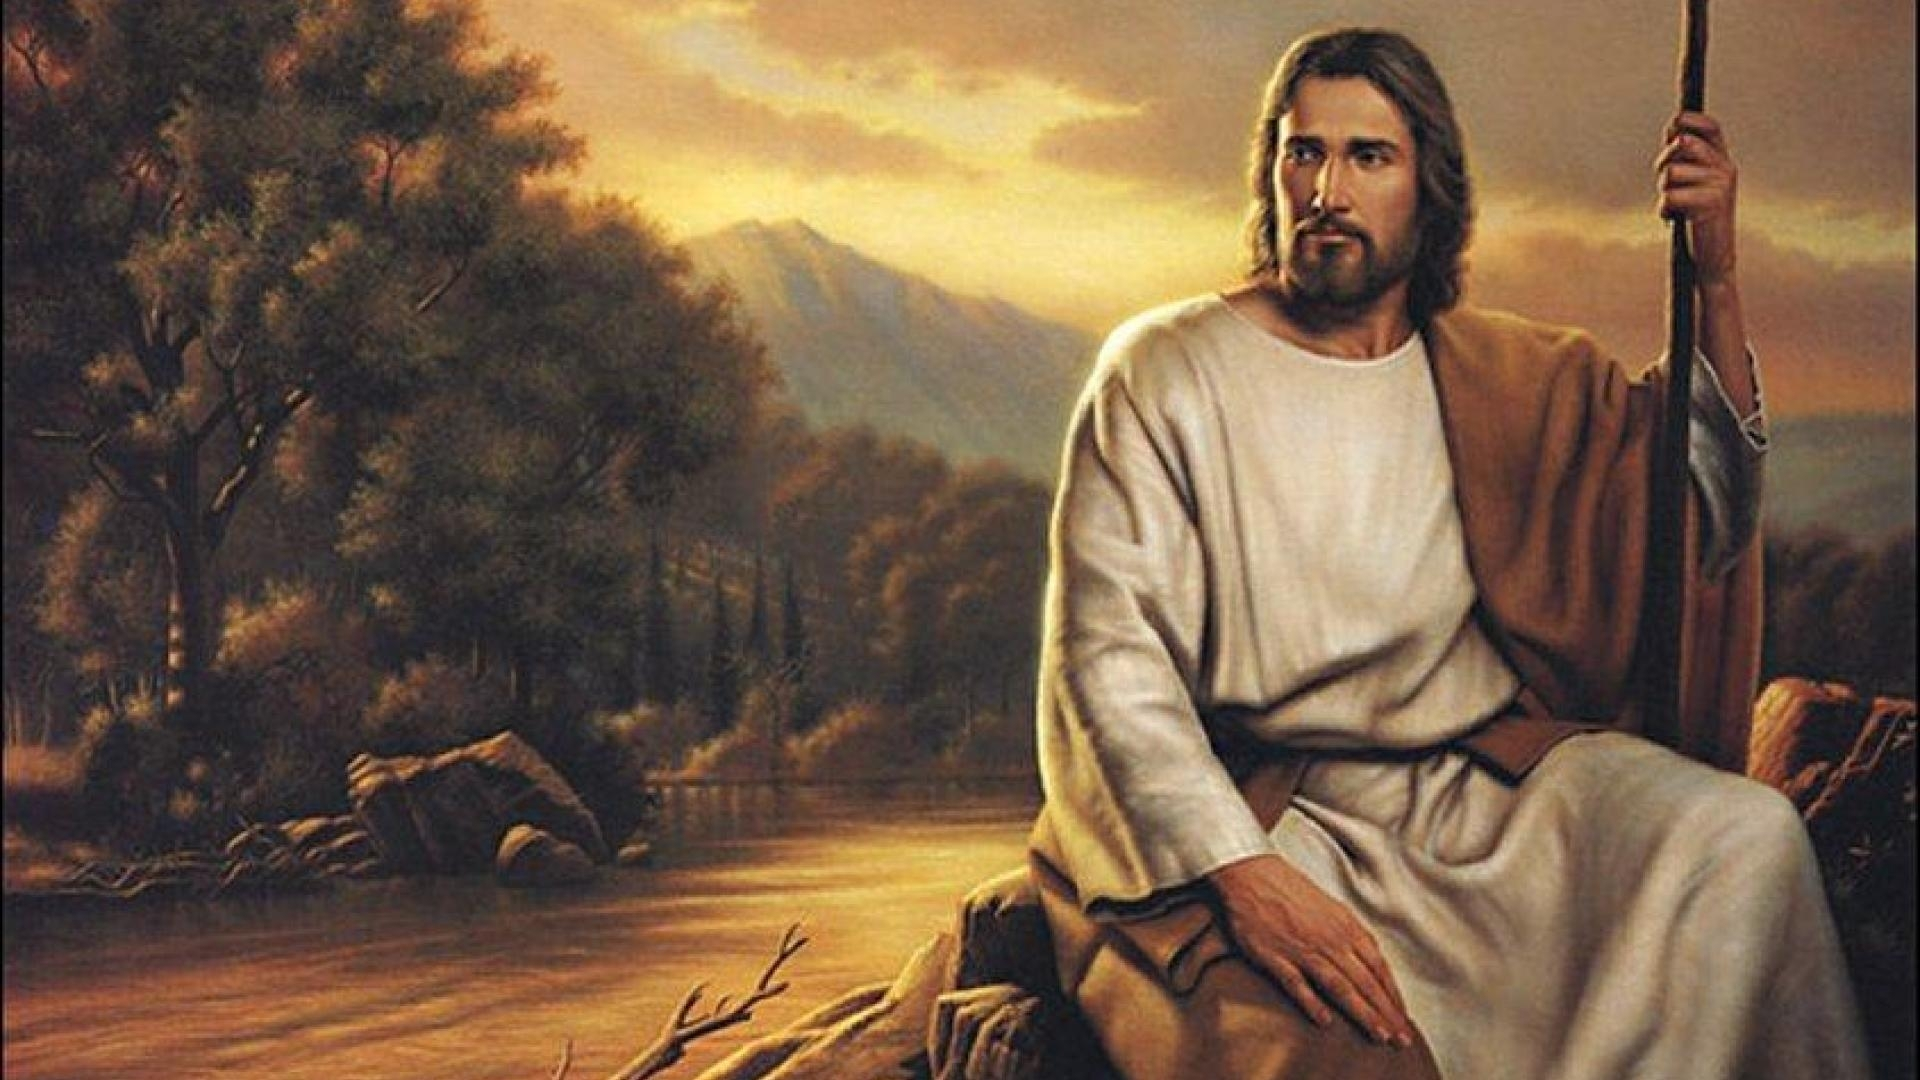 jesus desktop wallpapers : get free top quality jesus desktop